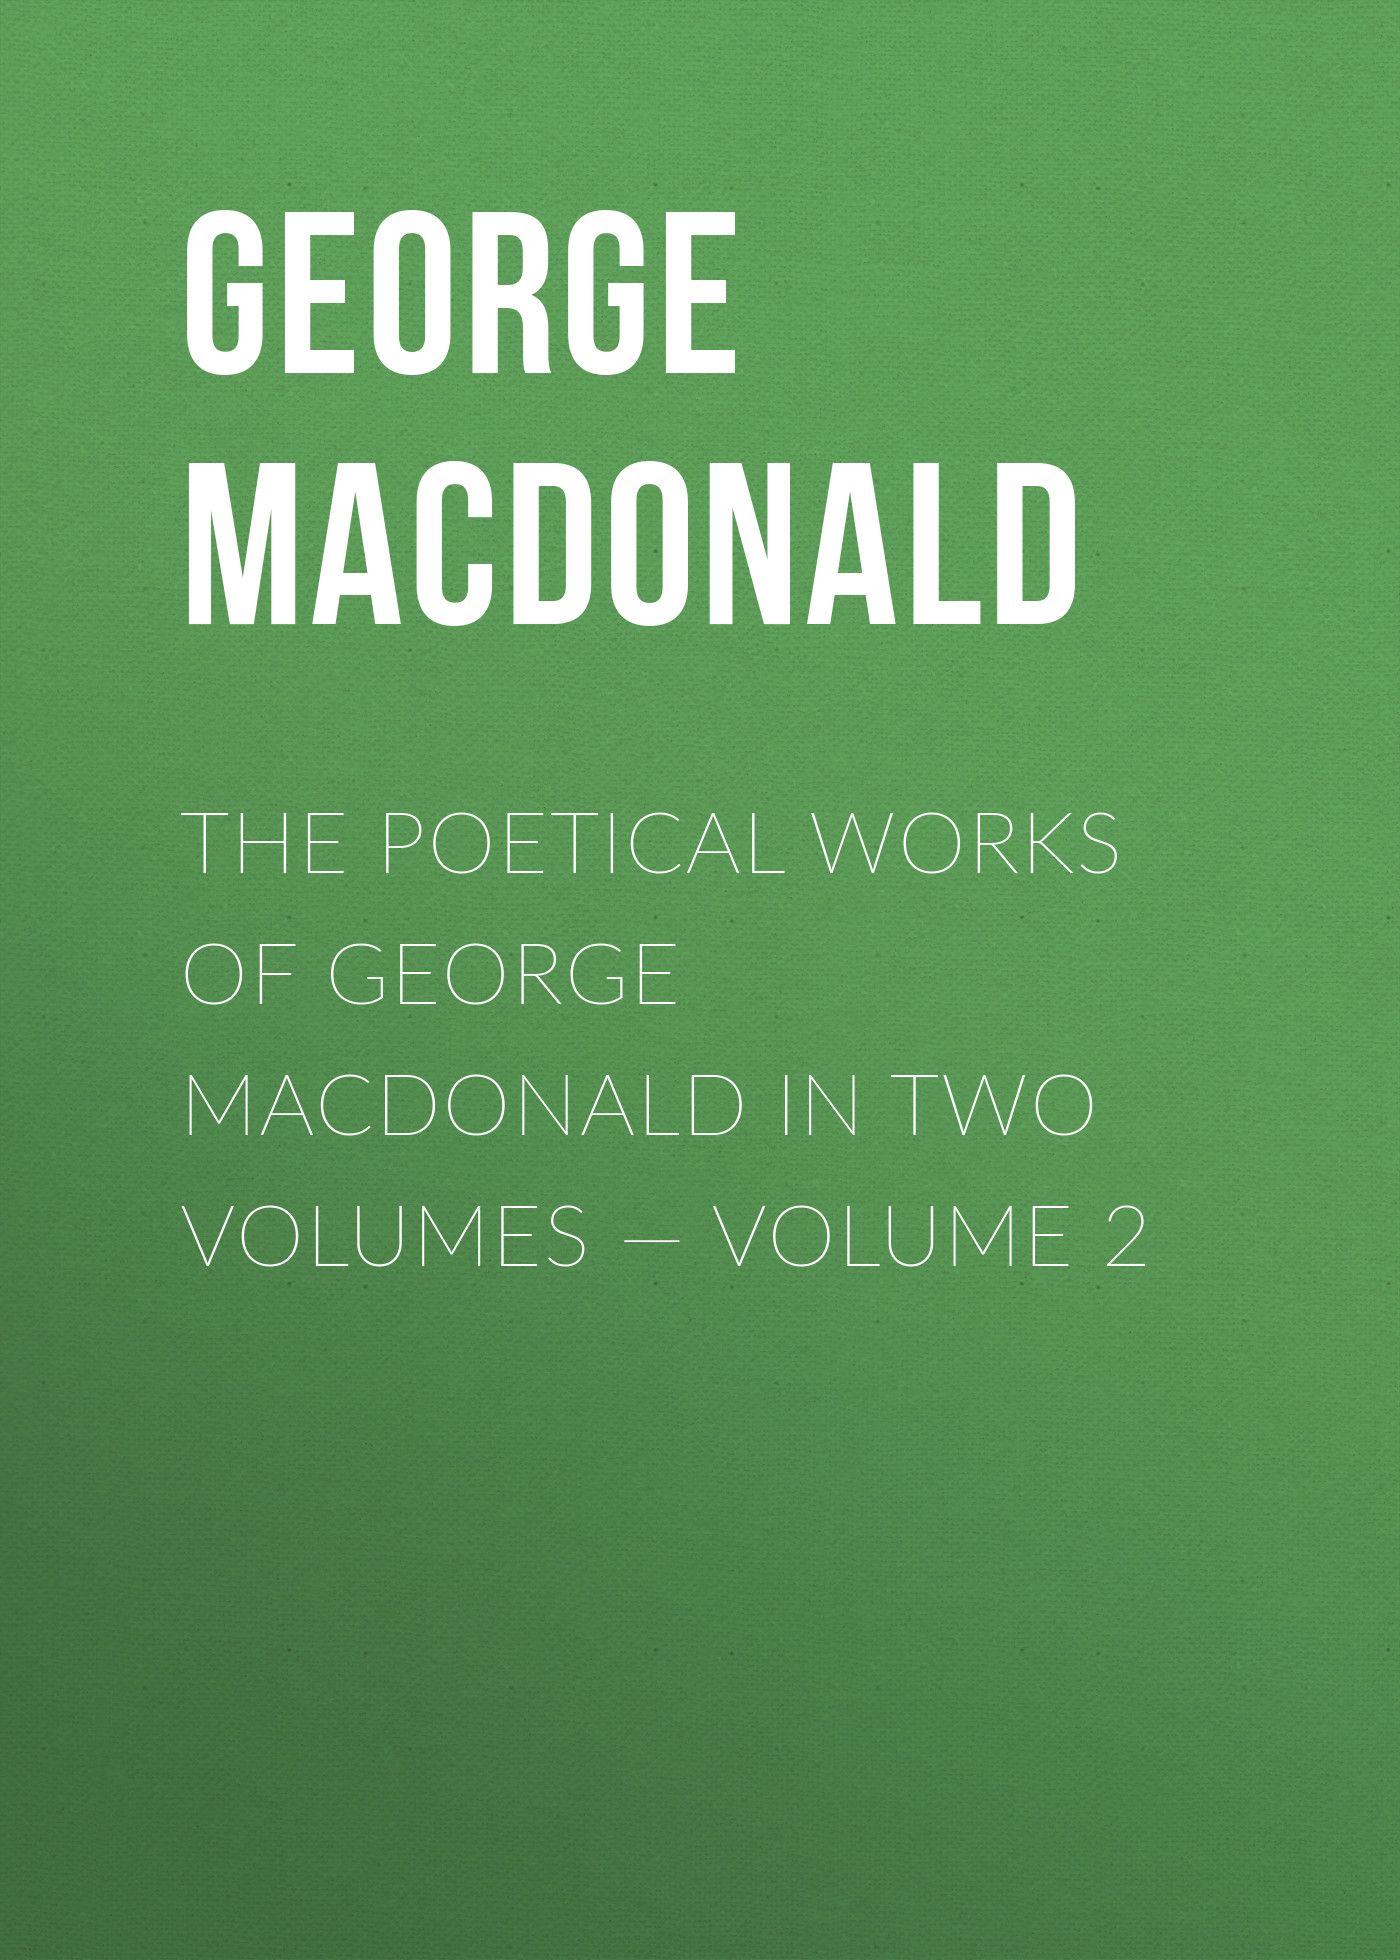 George MacDonald The poetical works of George MacDonald in two volumes — Volume 2 george macdonald the poetical works of george macdonald in two volumes volume 1